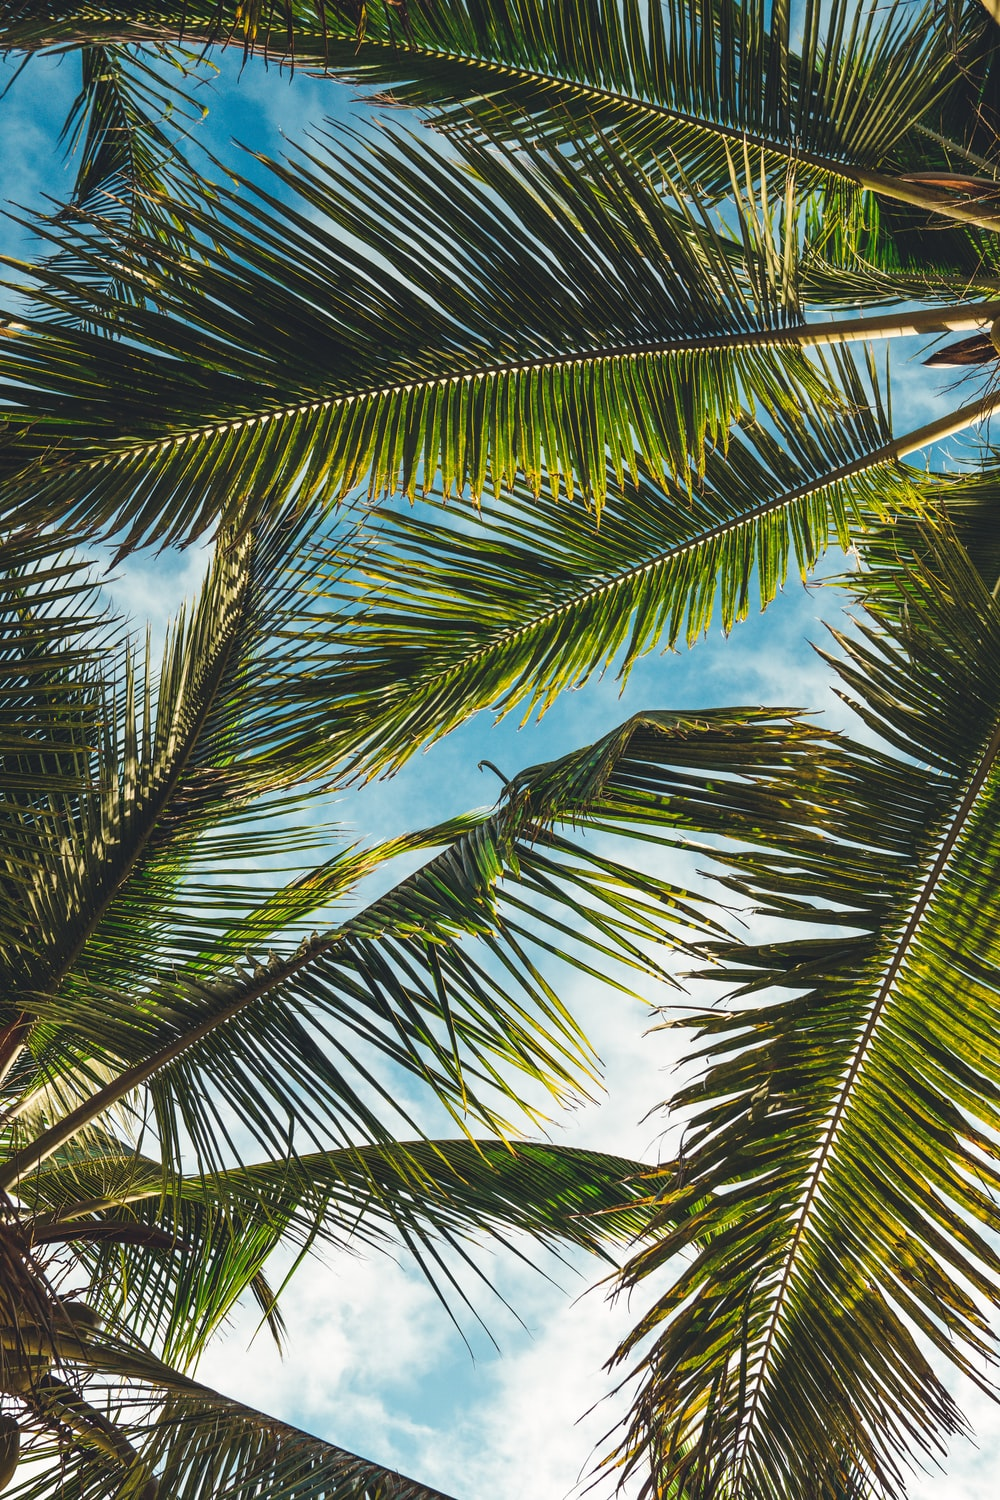 coconut tree leaves under blue sky during daytime